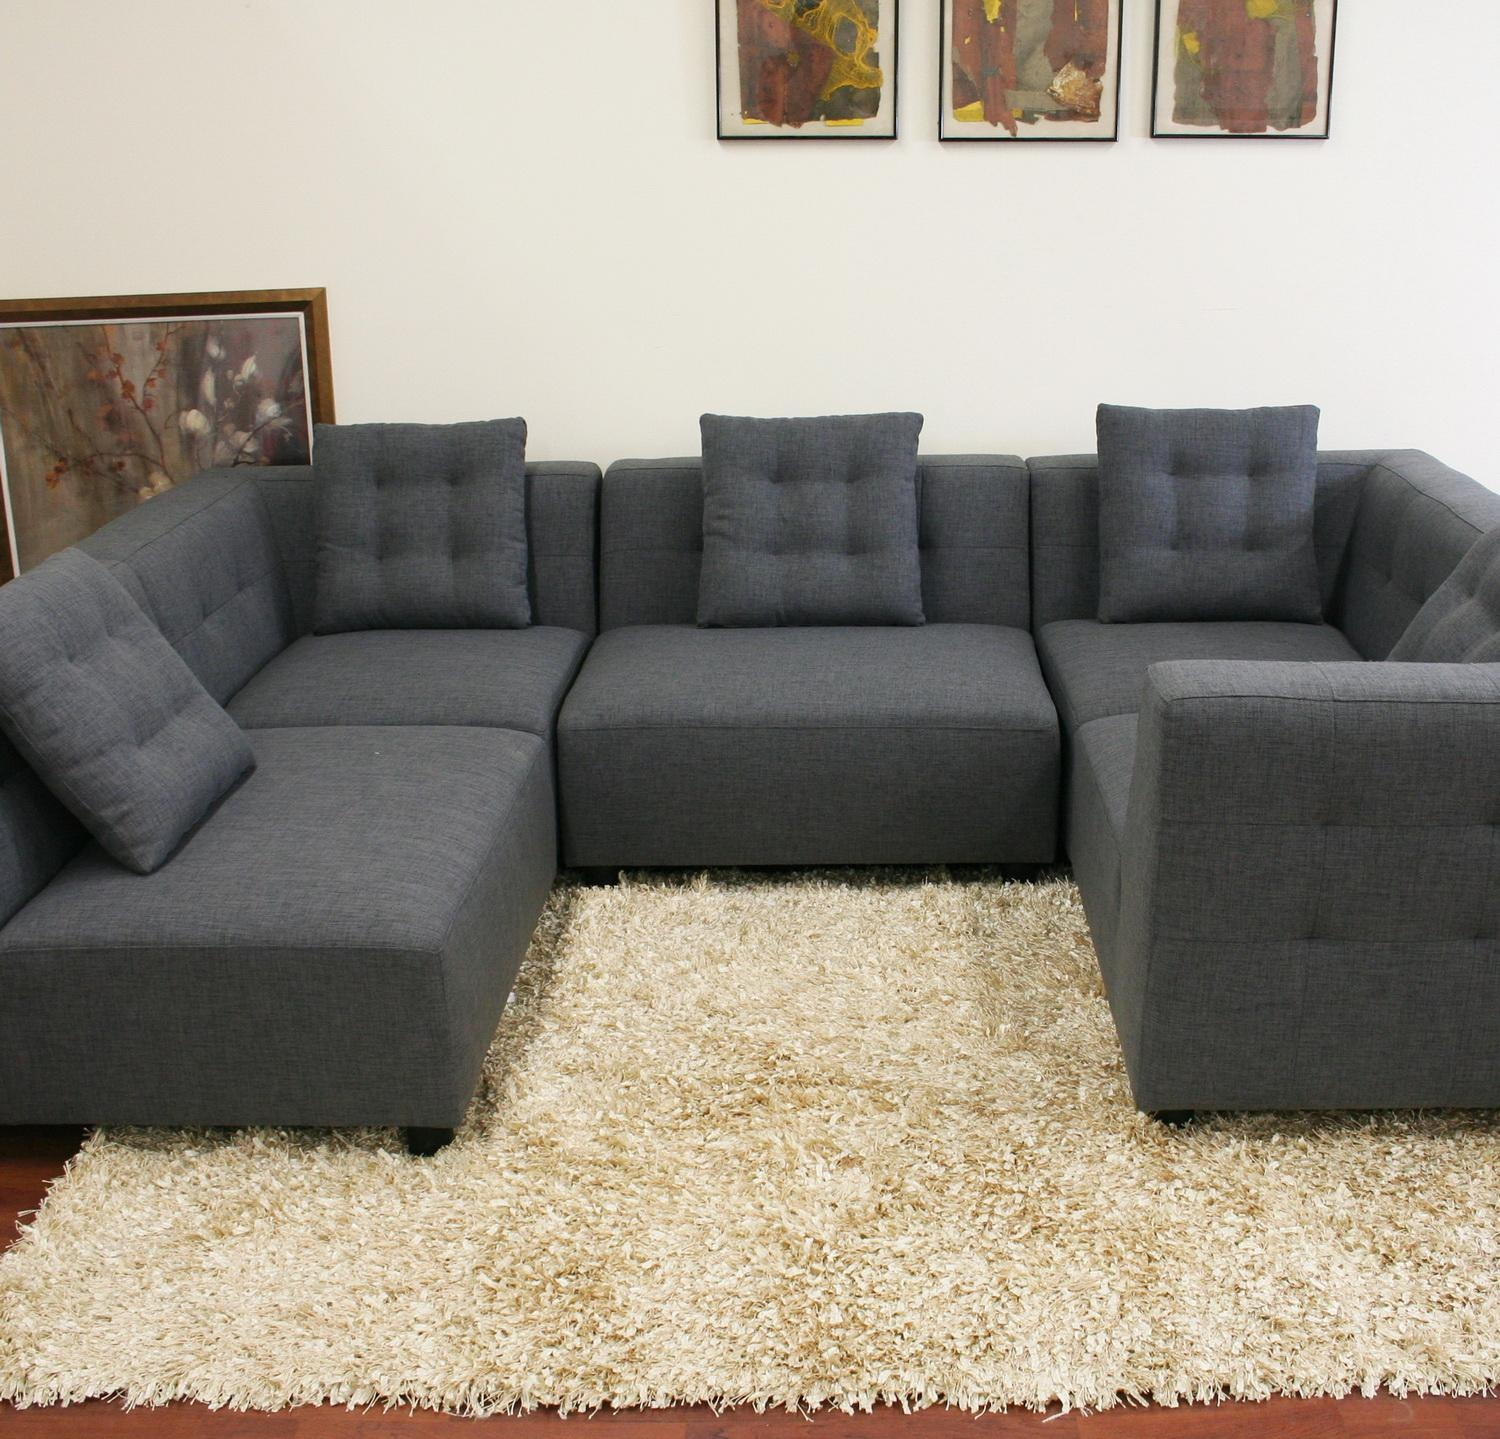 Interior: Gorgeous Lady Charcoal Sectional For Living Room Throughout Charcoal Gray Sectional Sofas (Image 9 of 20)